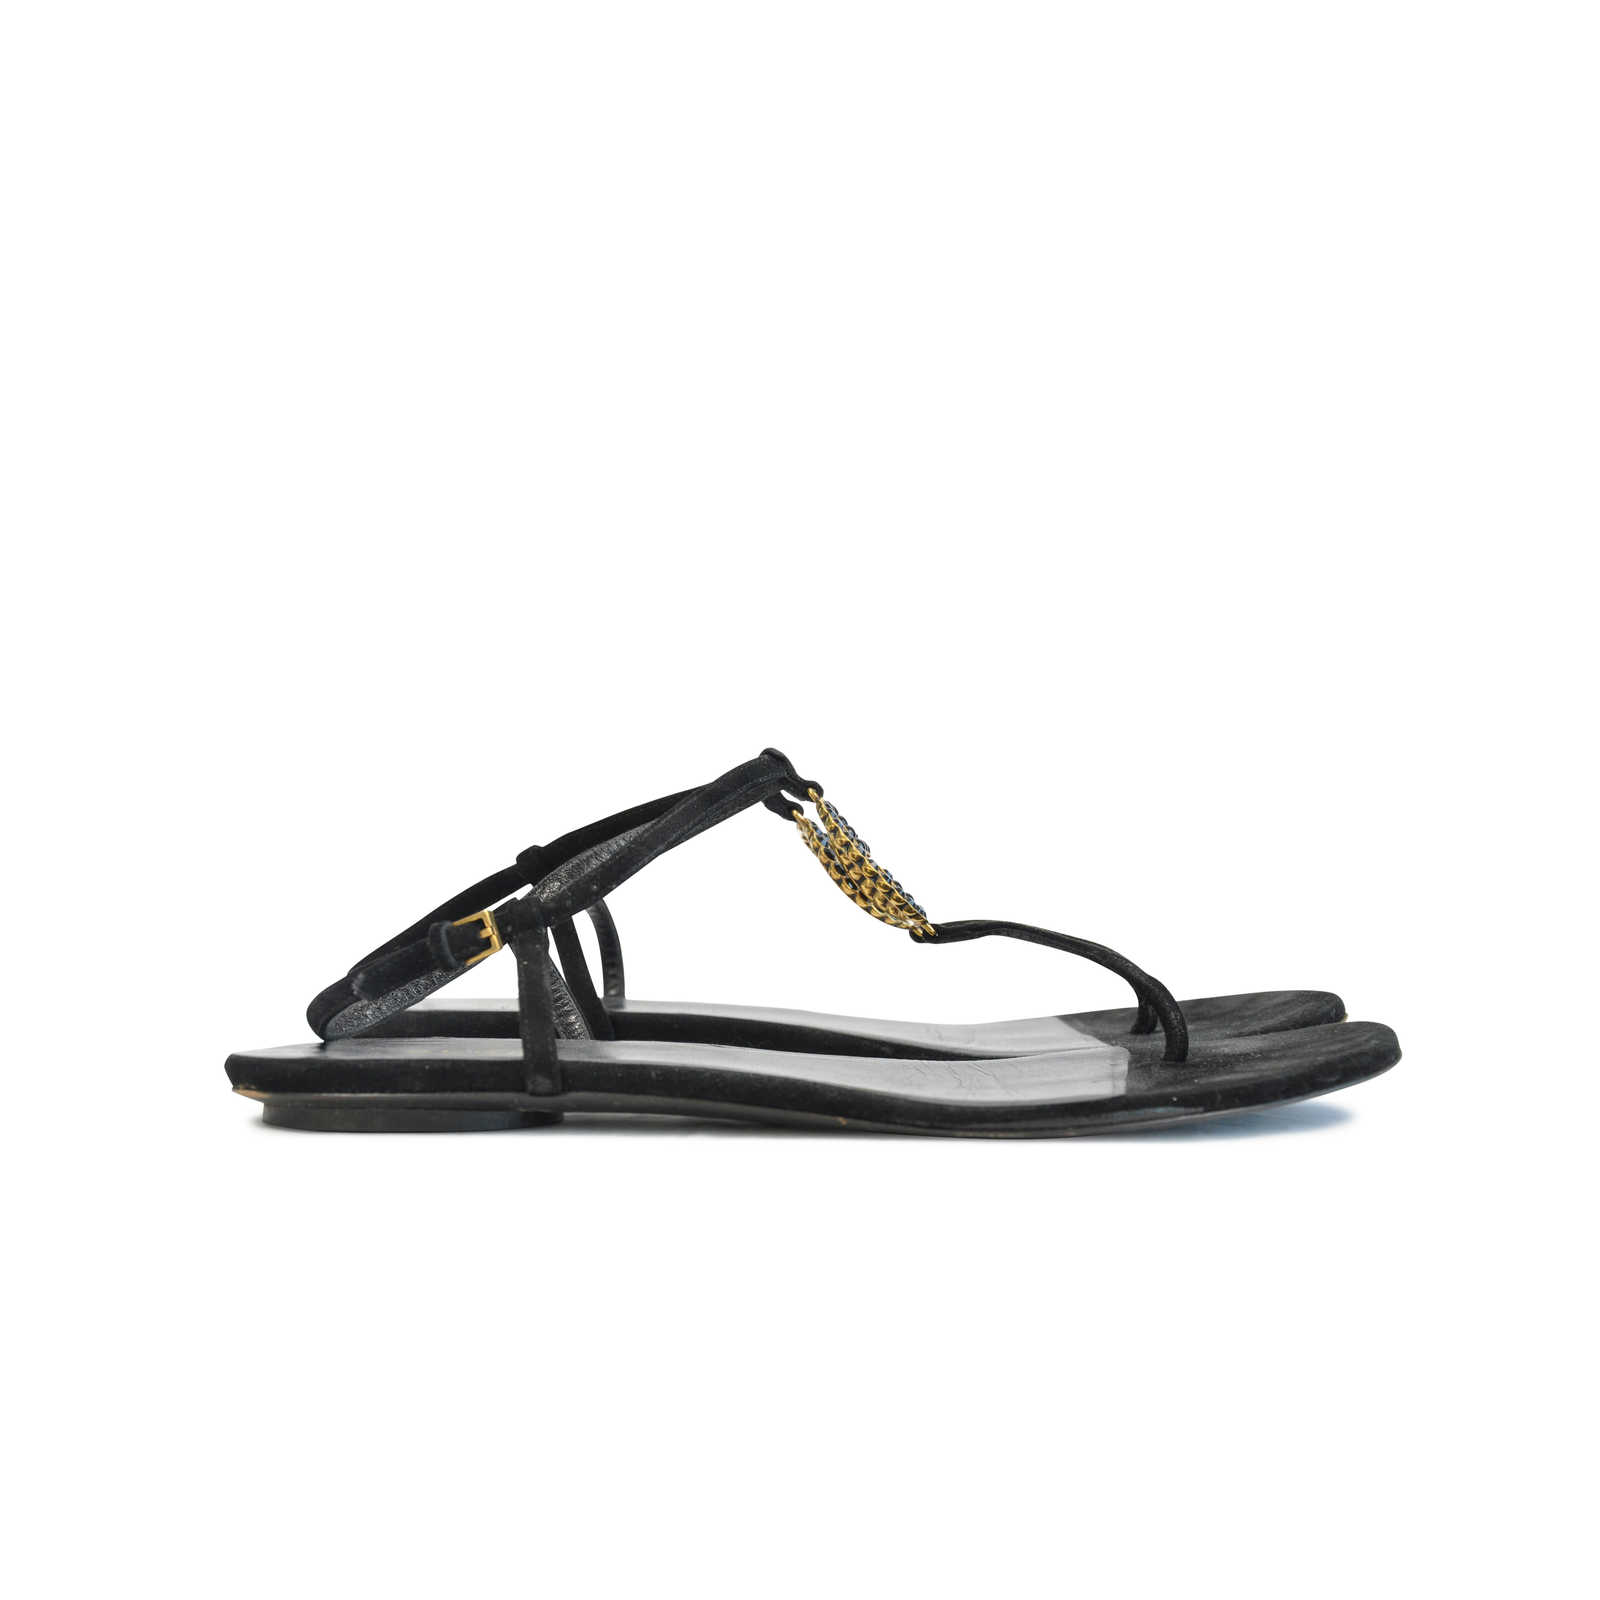 d144c970bde5 ... Authentic Second Hand Gucci Jewelled Thong Sandals (PSS-124-00006) -  Thumbnail